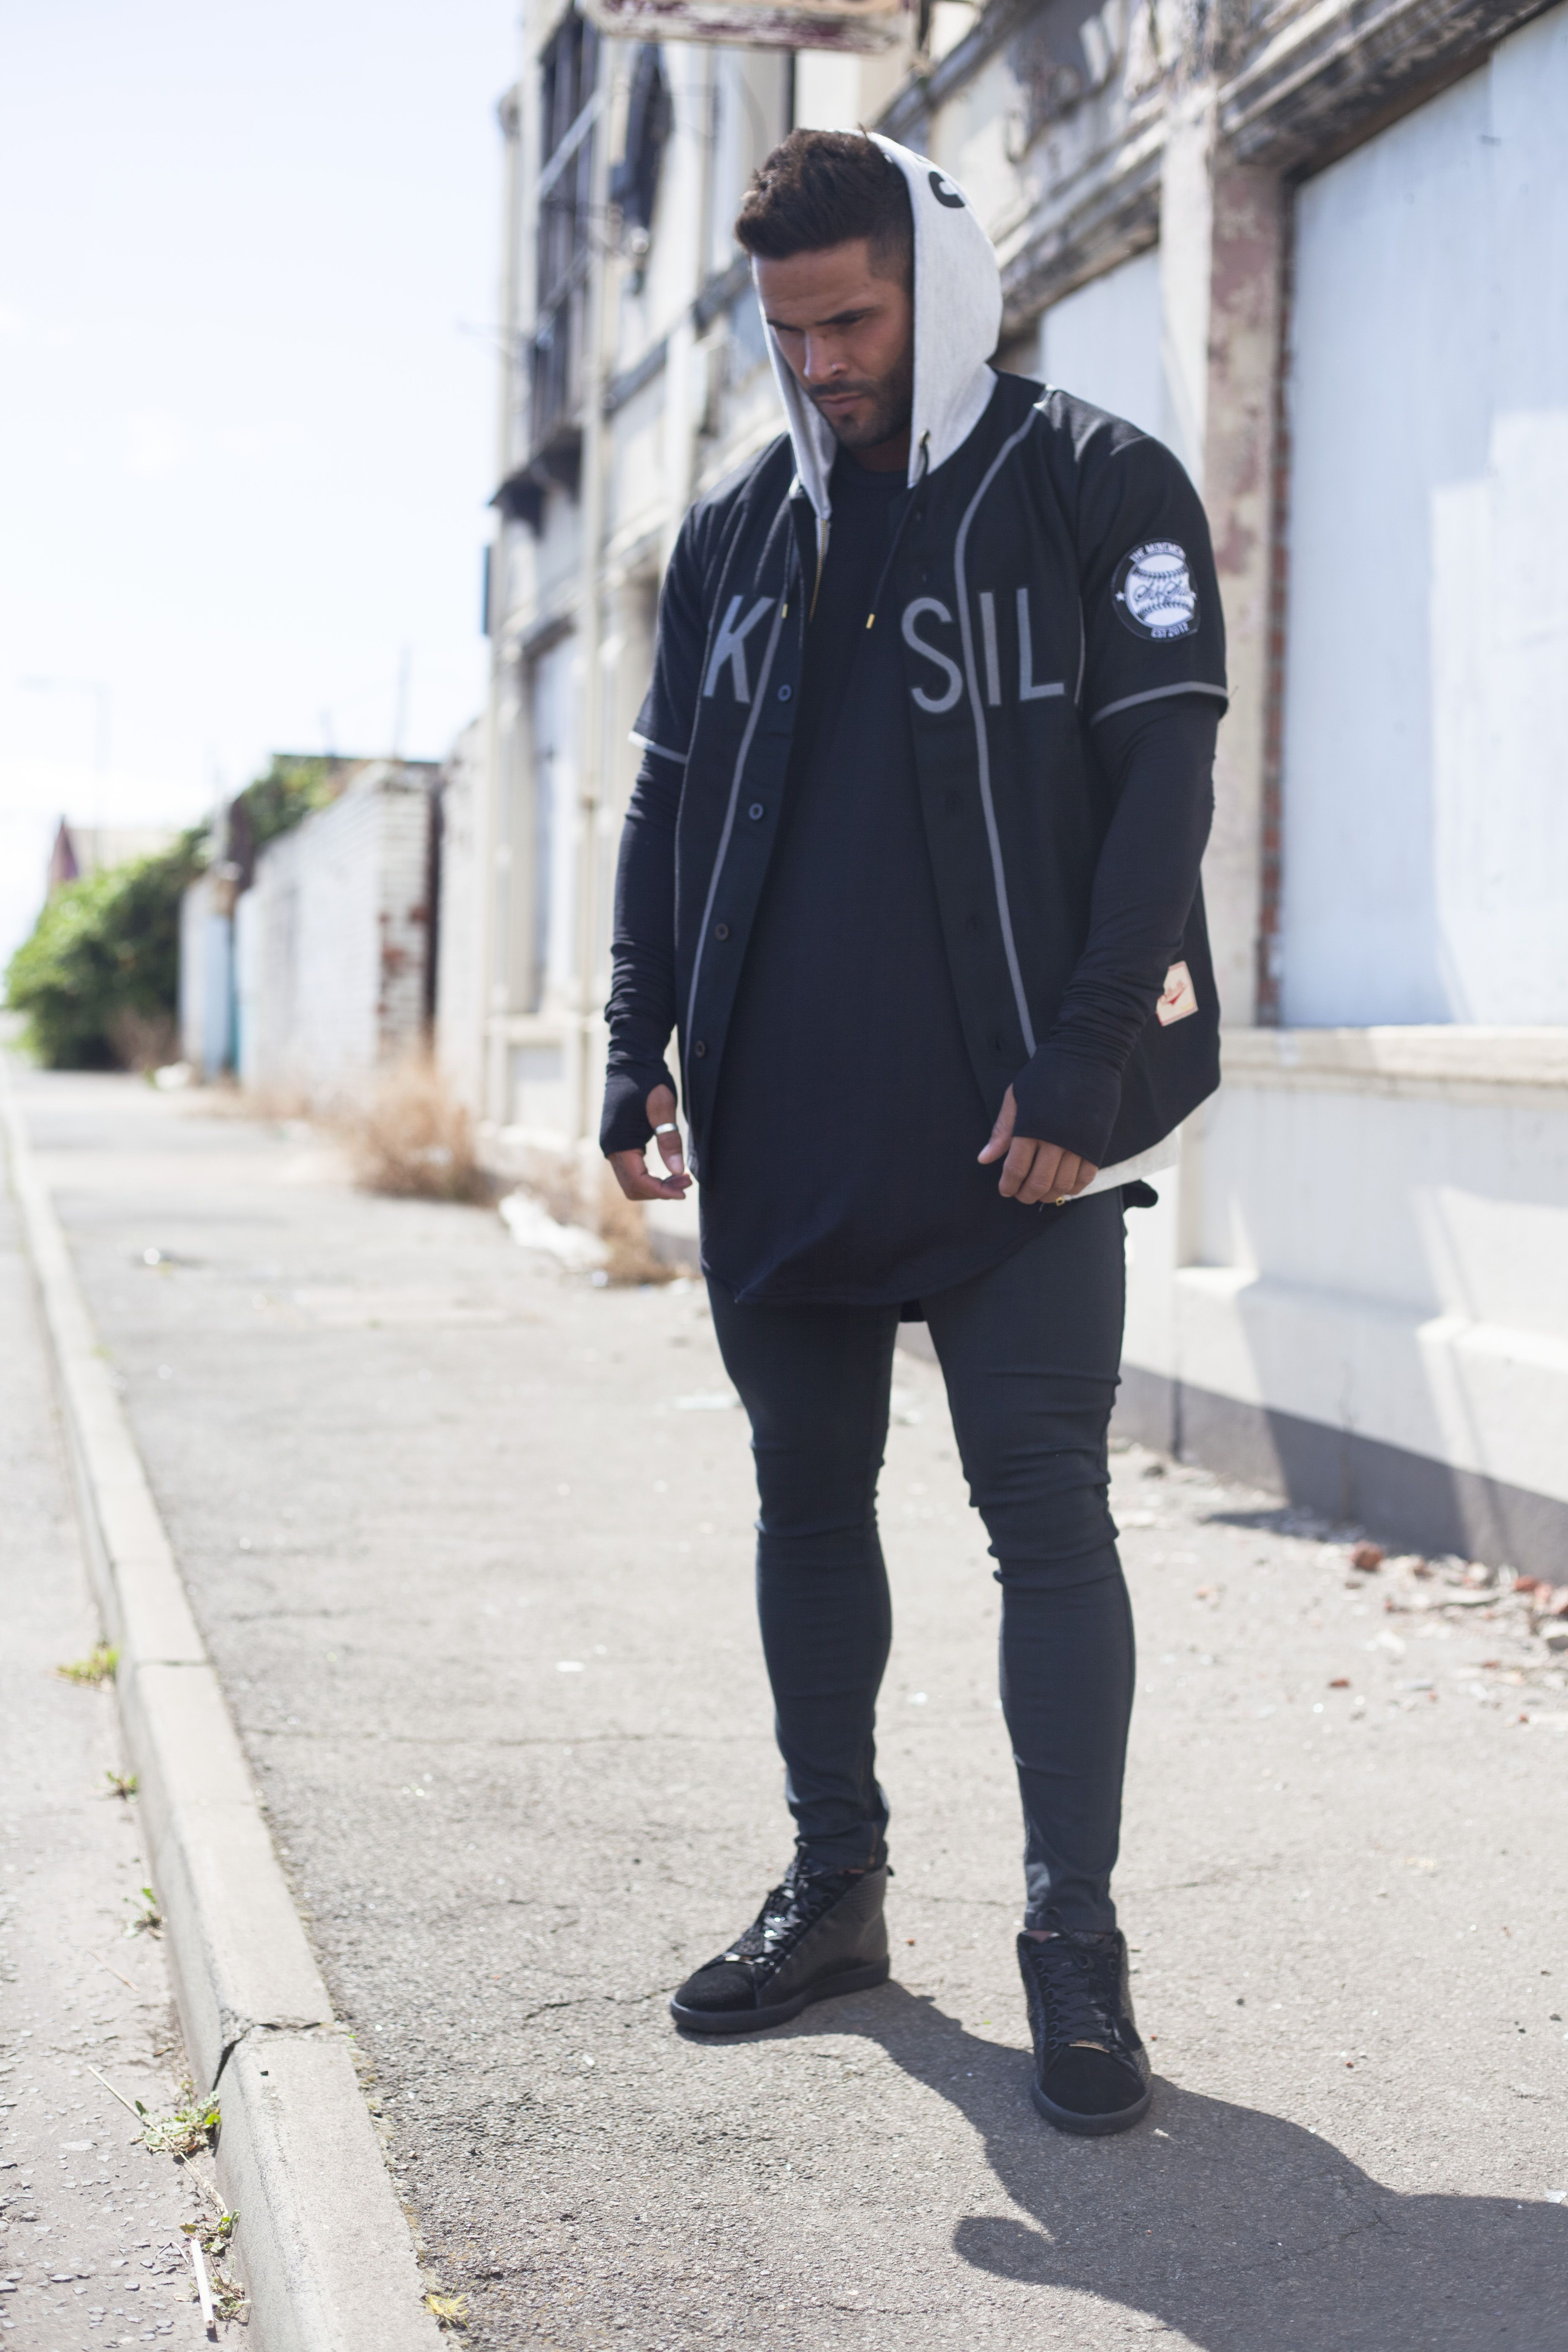 ... Adidas Yeezy 950 Season the latest purchase e7e7e bf9c2 AW 14 WOOL  BASEBALL JERSEY WITH SIKSILK SKINNY JEANS AND THE ...